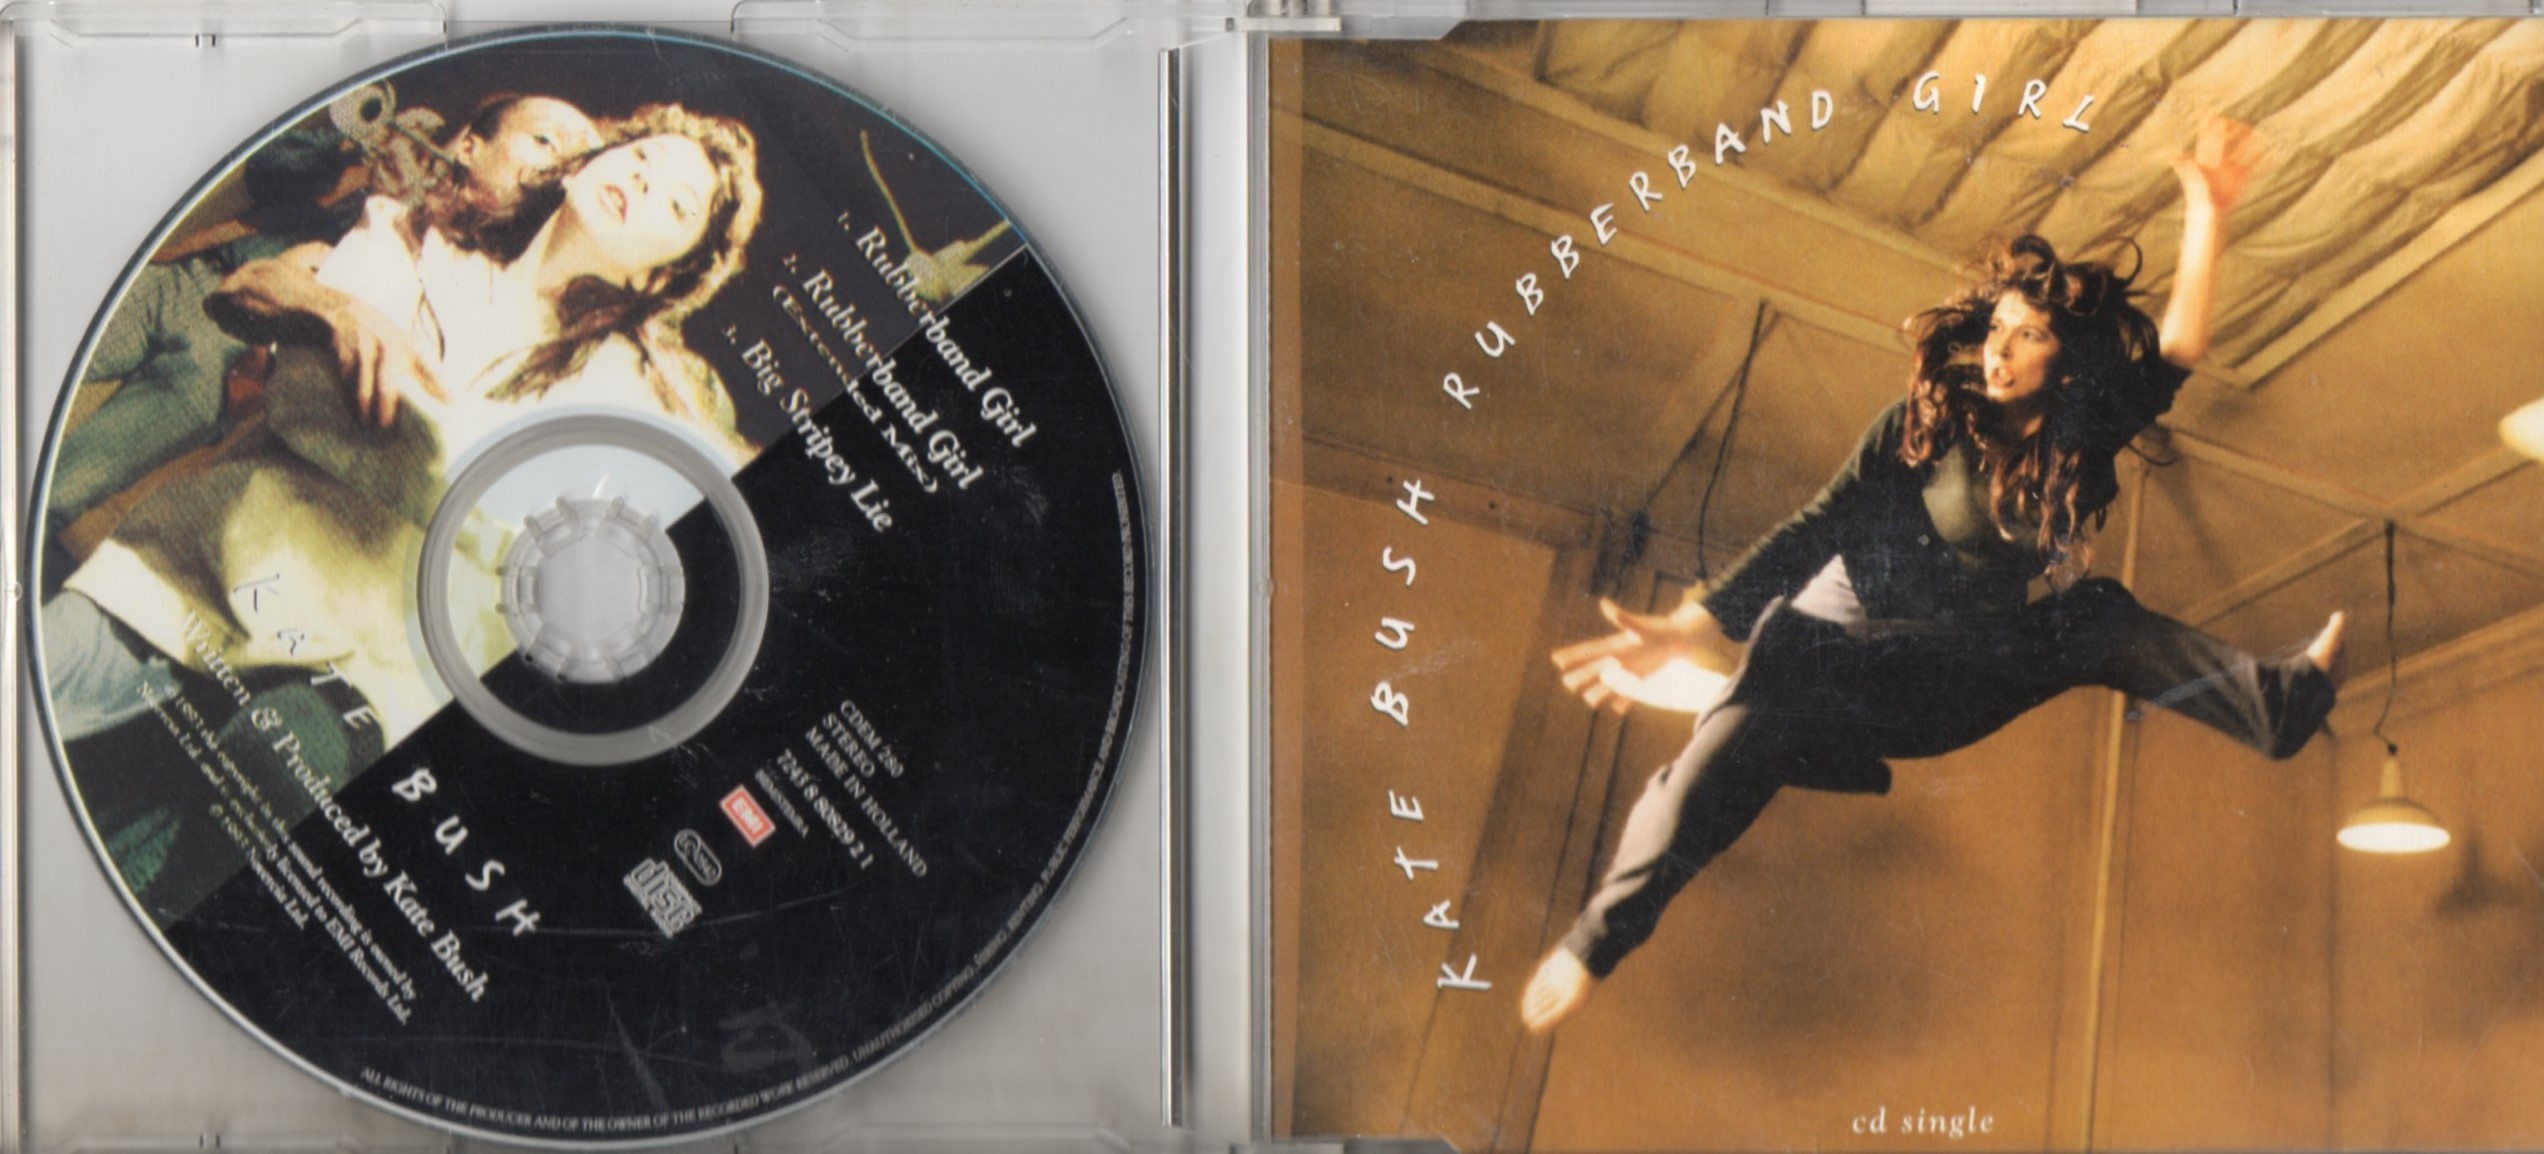 Rubberband Girl 3-track Jewel Case - Kate BUSH